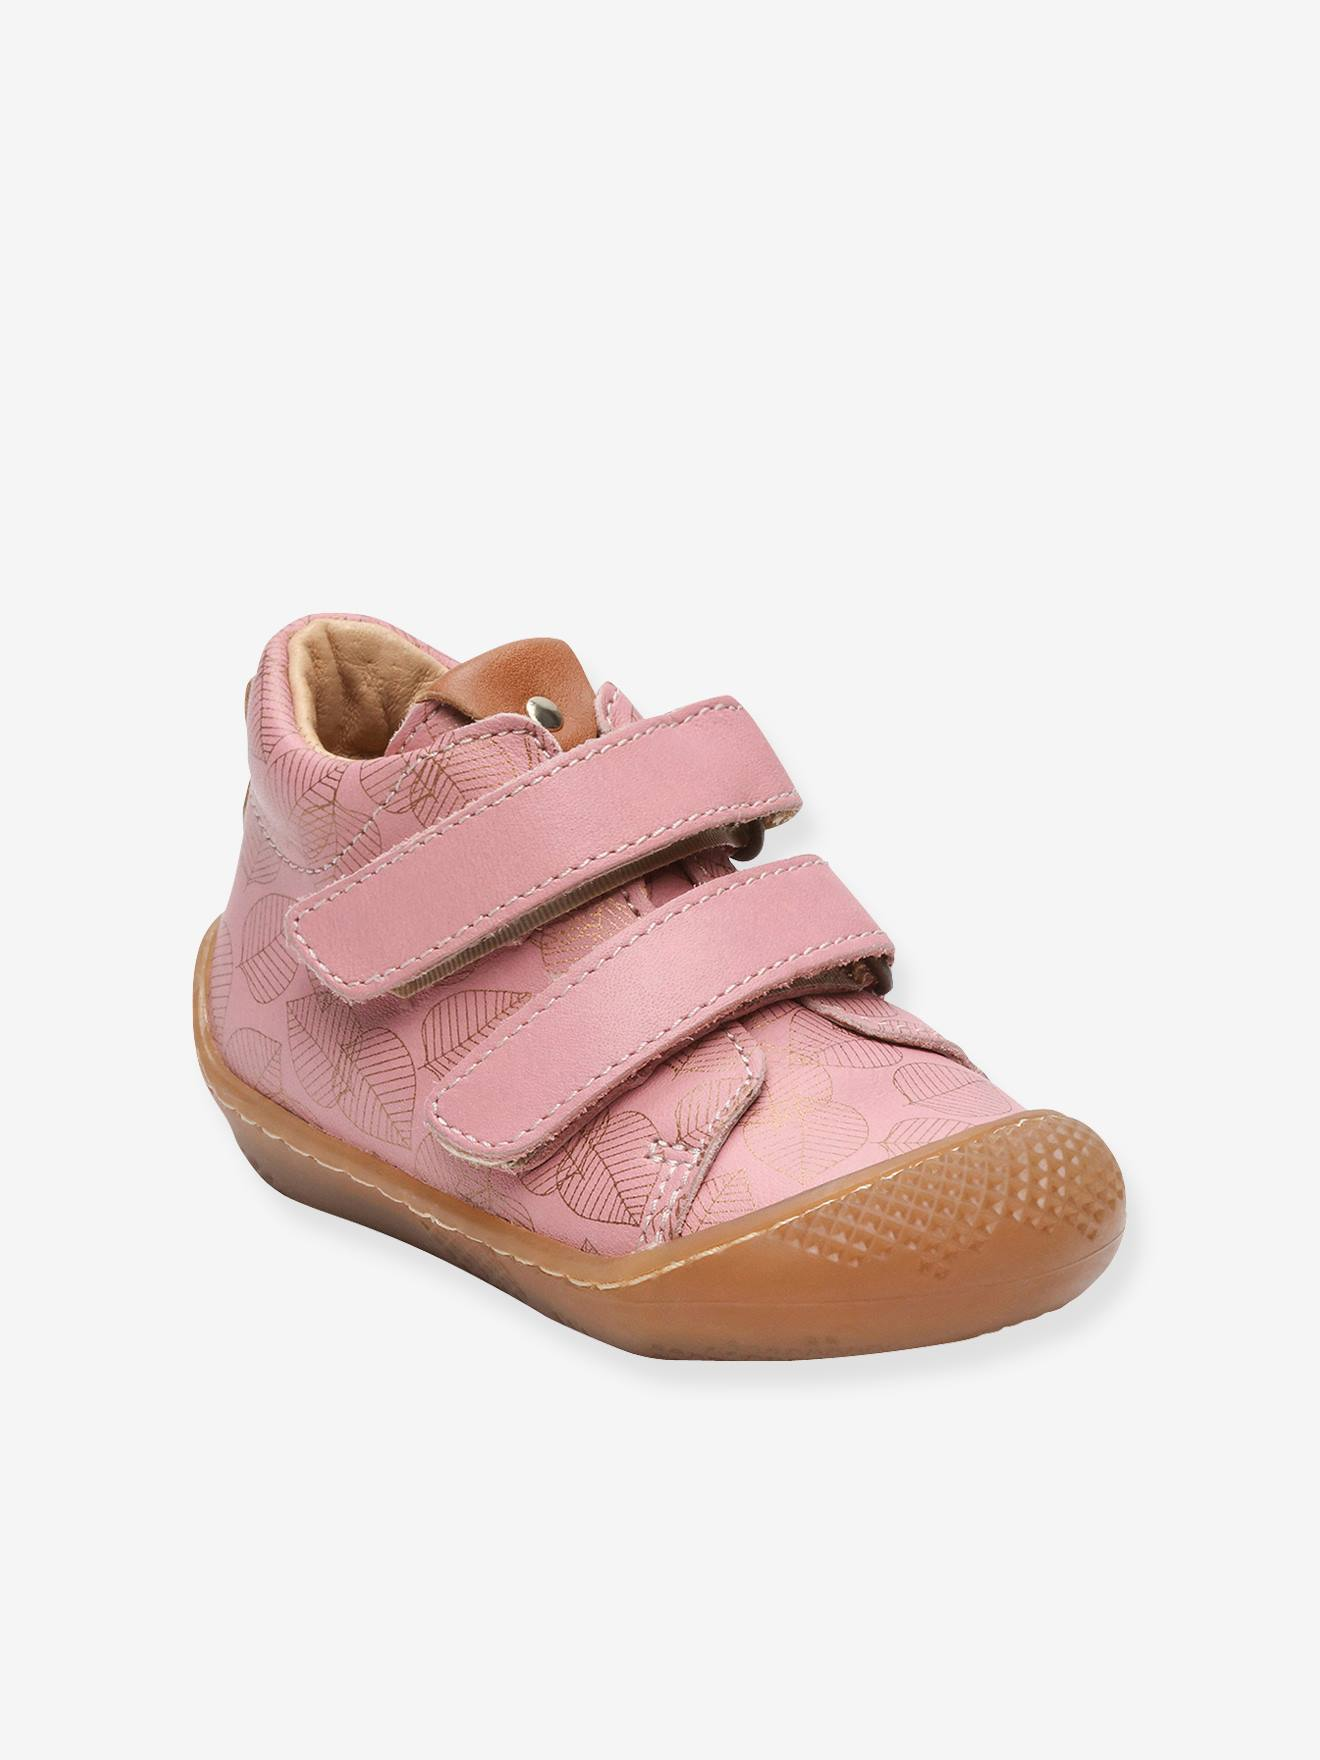 Baby Shoes With Ankle Support : shoes, ankle, support, Touch-Fastening, Leather, Ankle, Boots, Girls,, Arloa, Babybotte®, Light, Solid,, Shoes